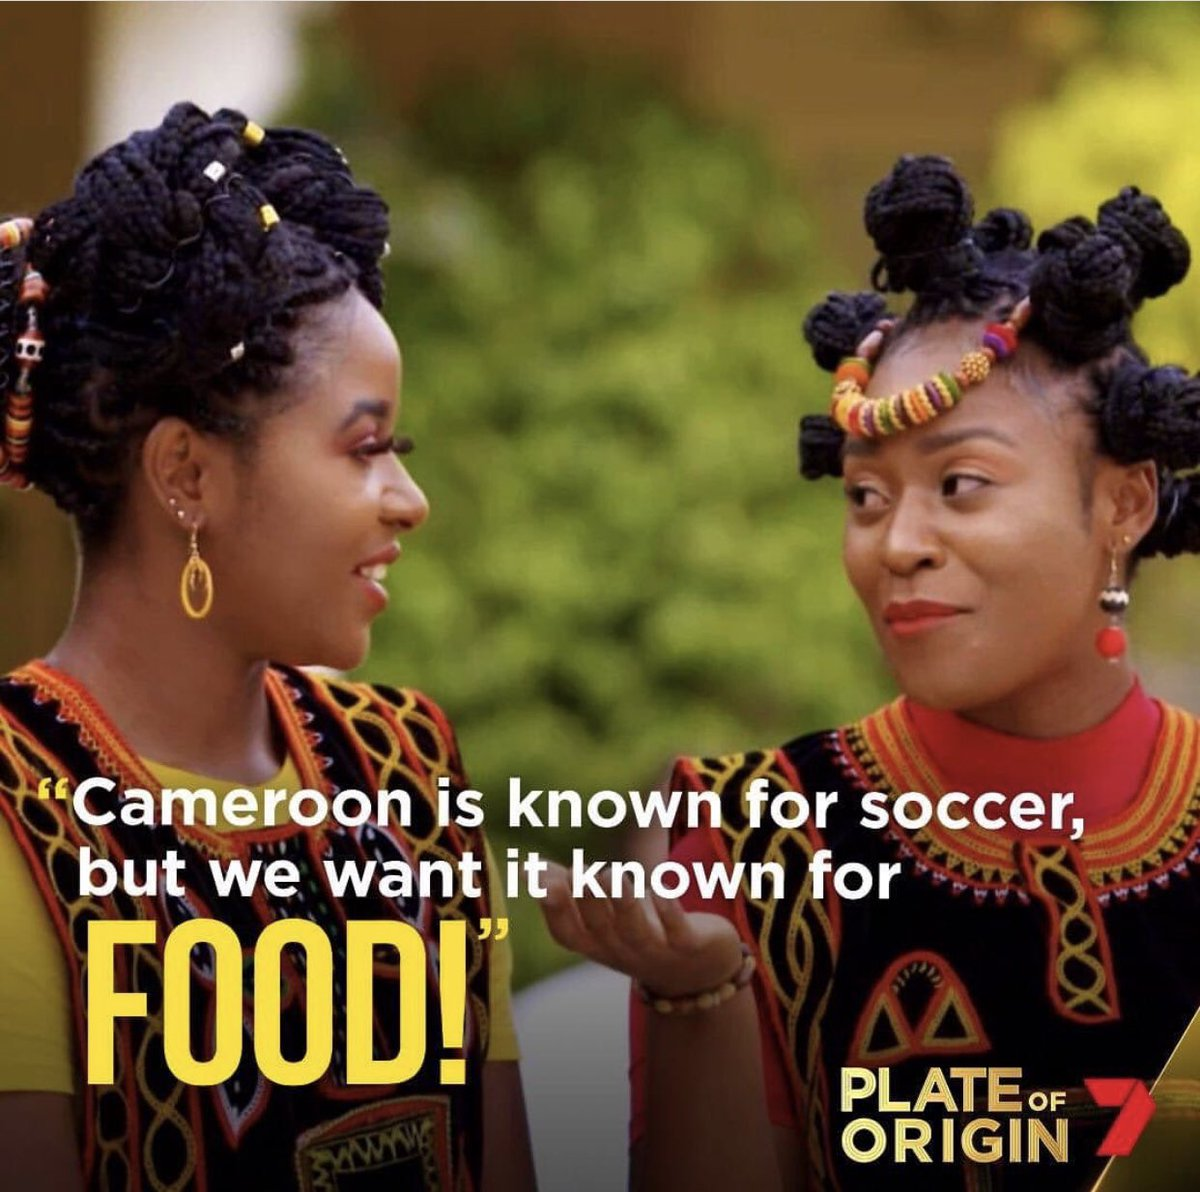 Congratulations to Ashley and Kelly. You girls didn't win the cash prize of 100,000 Dollars amounting to CFAF 55, 618, 800, 00, but You are WINNERS!   #MissGinaPromotes #Cameroon #cookingclass #PlateOfOriginAU https://t.co/xWVGj305Md